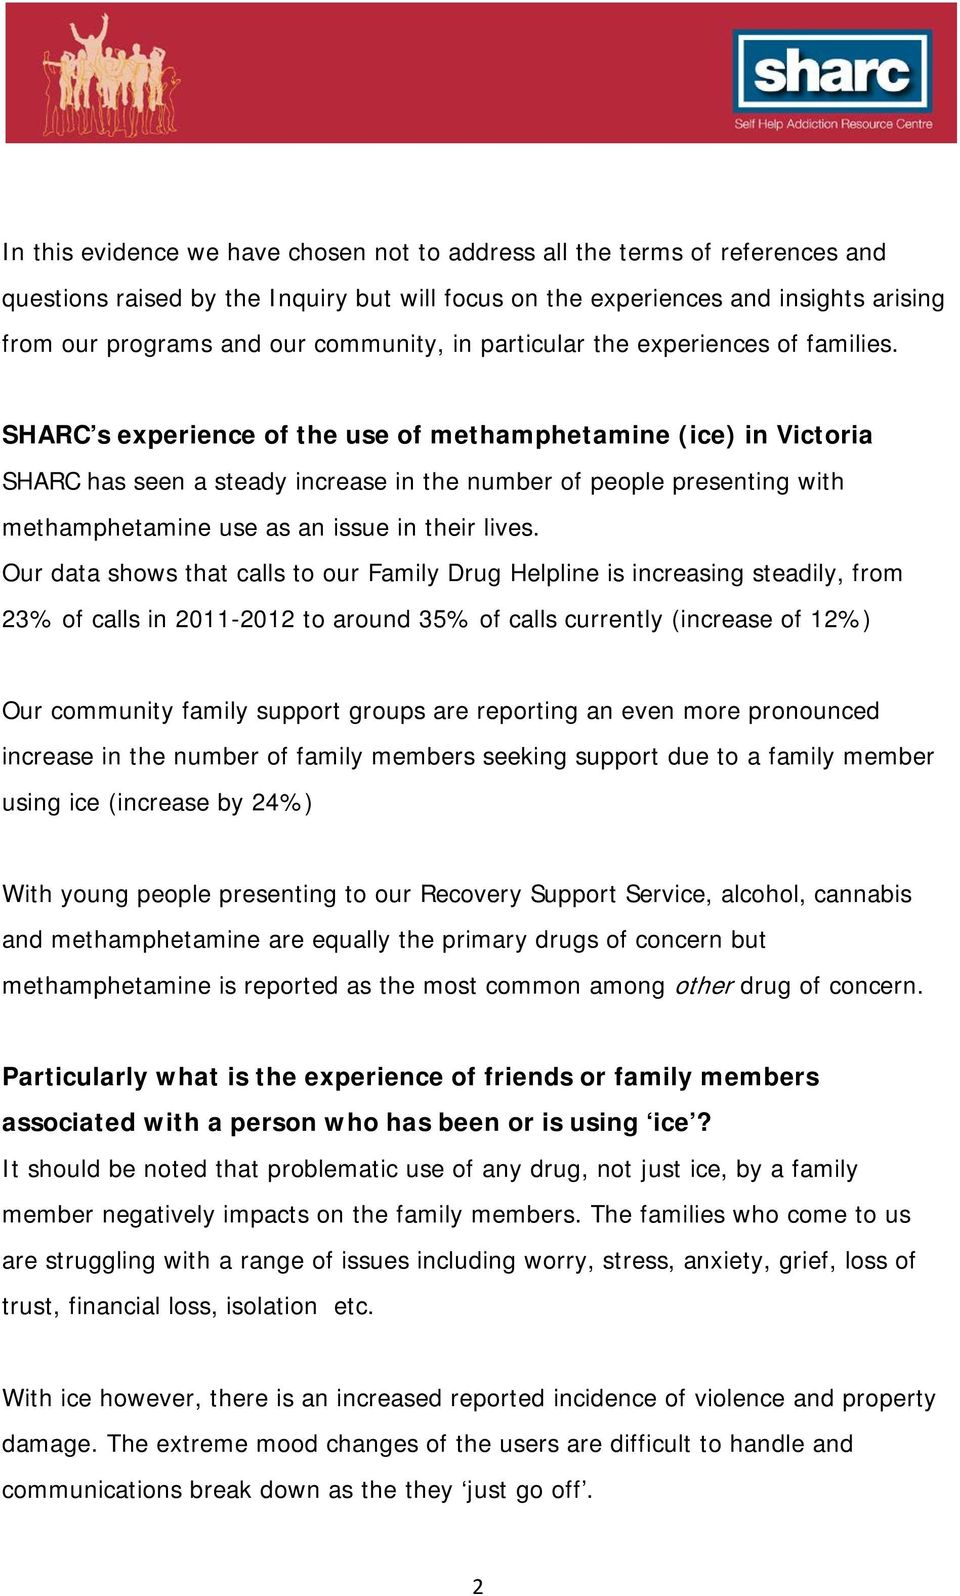 SHARC s experience of the use of methamphetamine (ice) in Victoria SHARC has seen a steady increase in the number of people presenting with methamphetamine use as an issue in their lives.